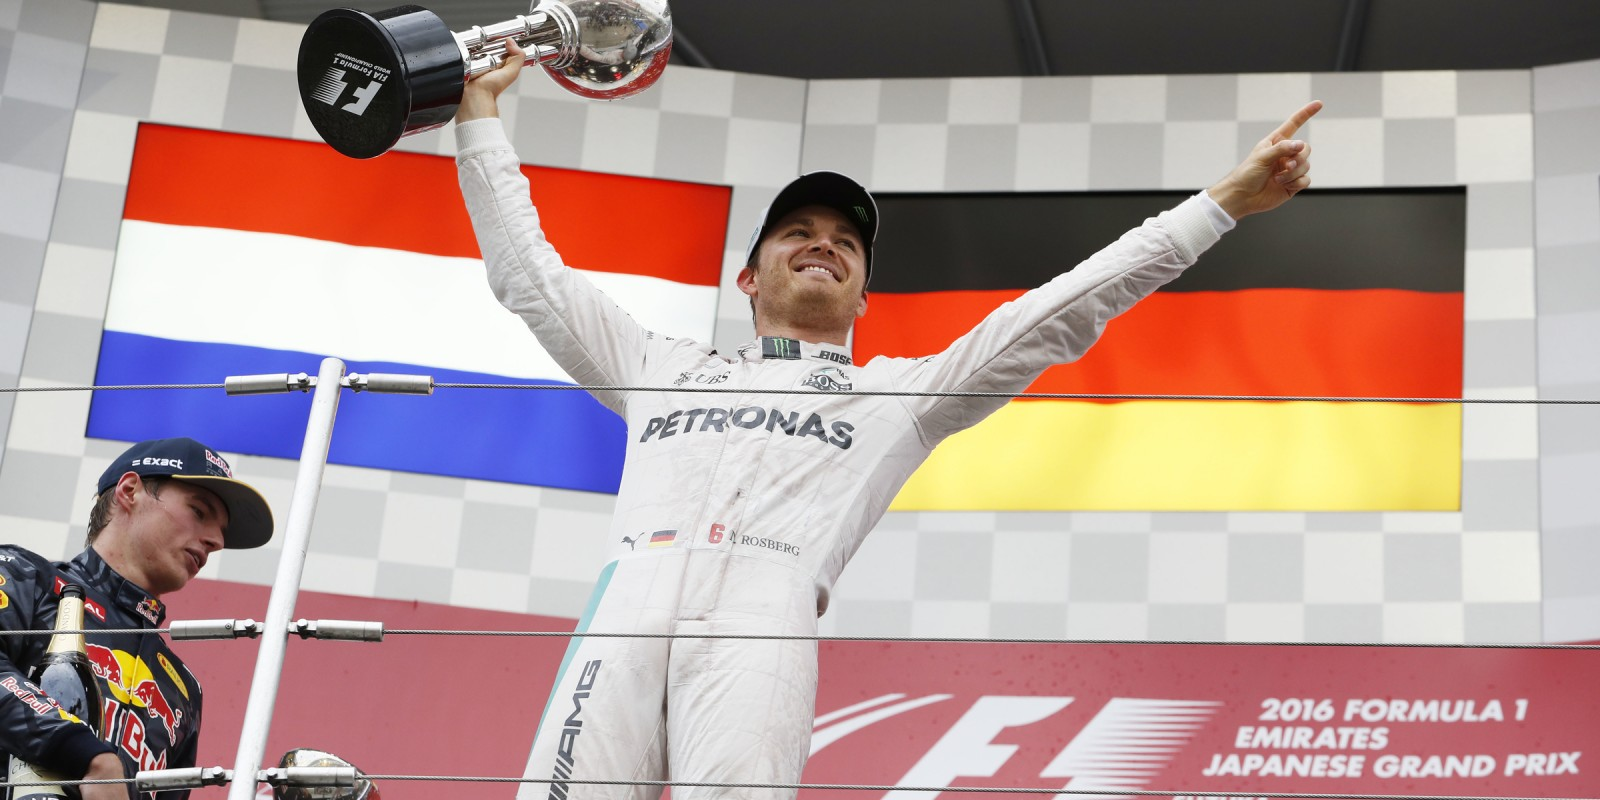 Sunday images from the 2016 Japanese Grand Prix